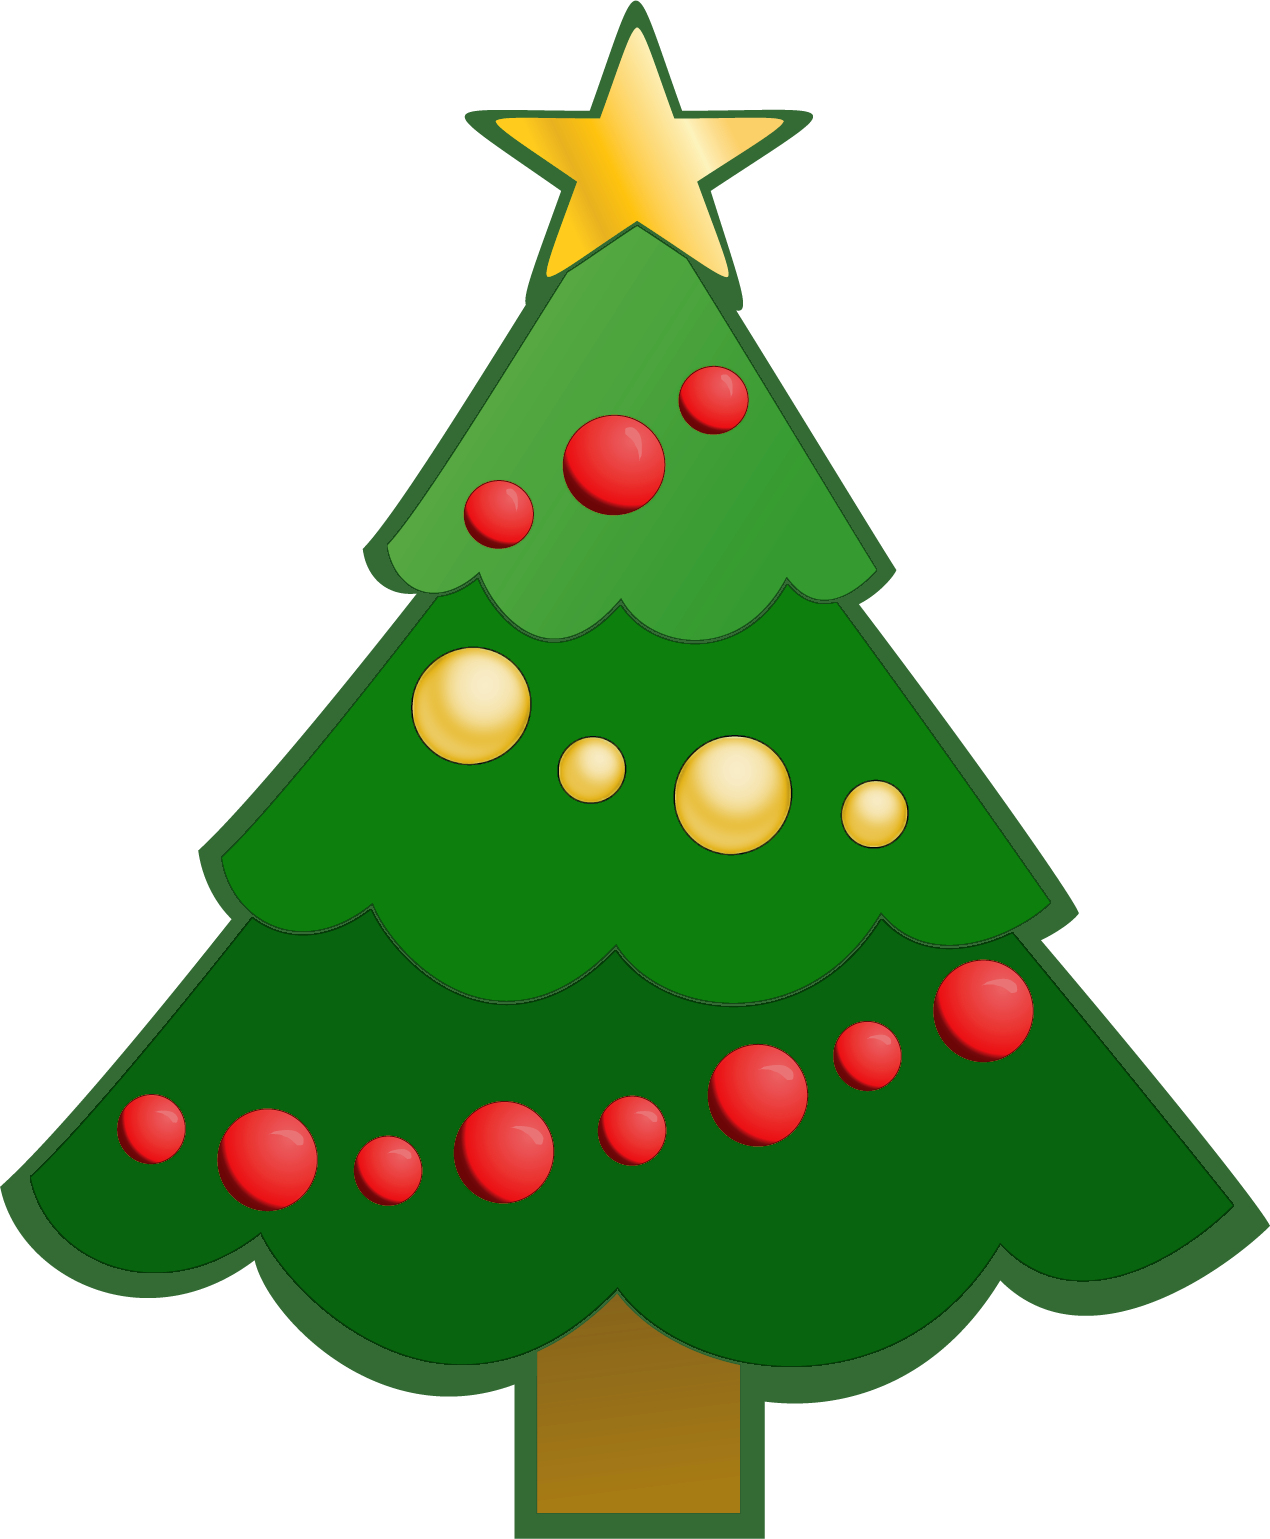 Tree clipart cute jpg download Easy Christmas Clipart at GetDrawings.com | Free for personal use ... jpg download